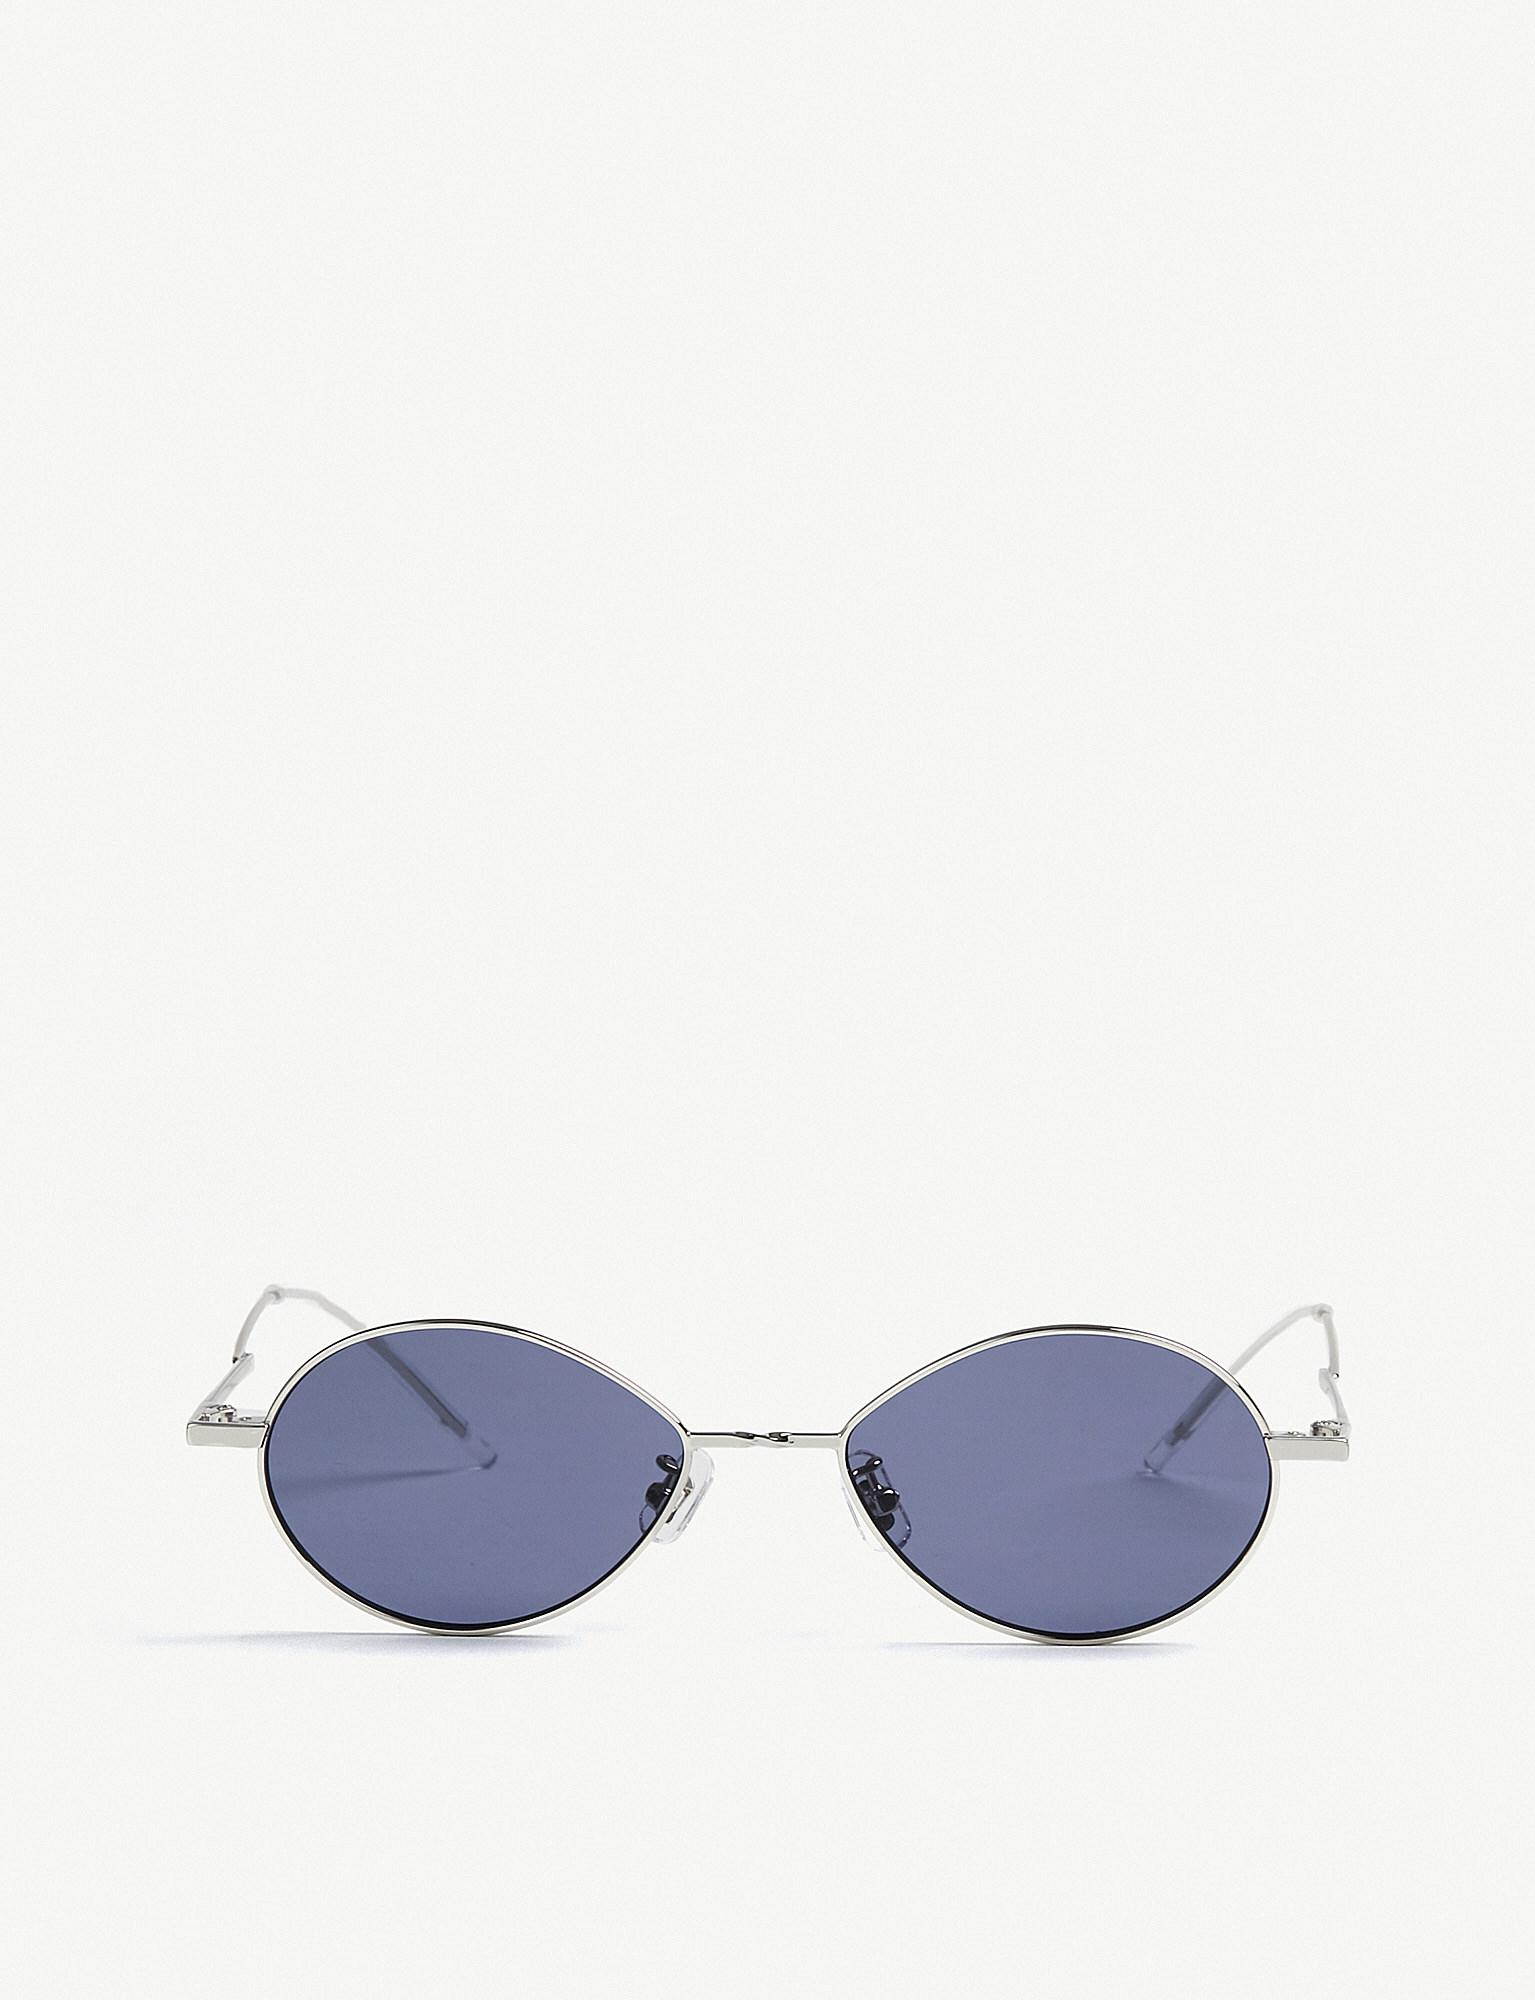 9017caf7bb2f6 Lyst - Gentle Monster Cobalt Tinted Stainless Steel Sunglasses in Blue